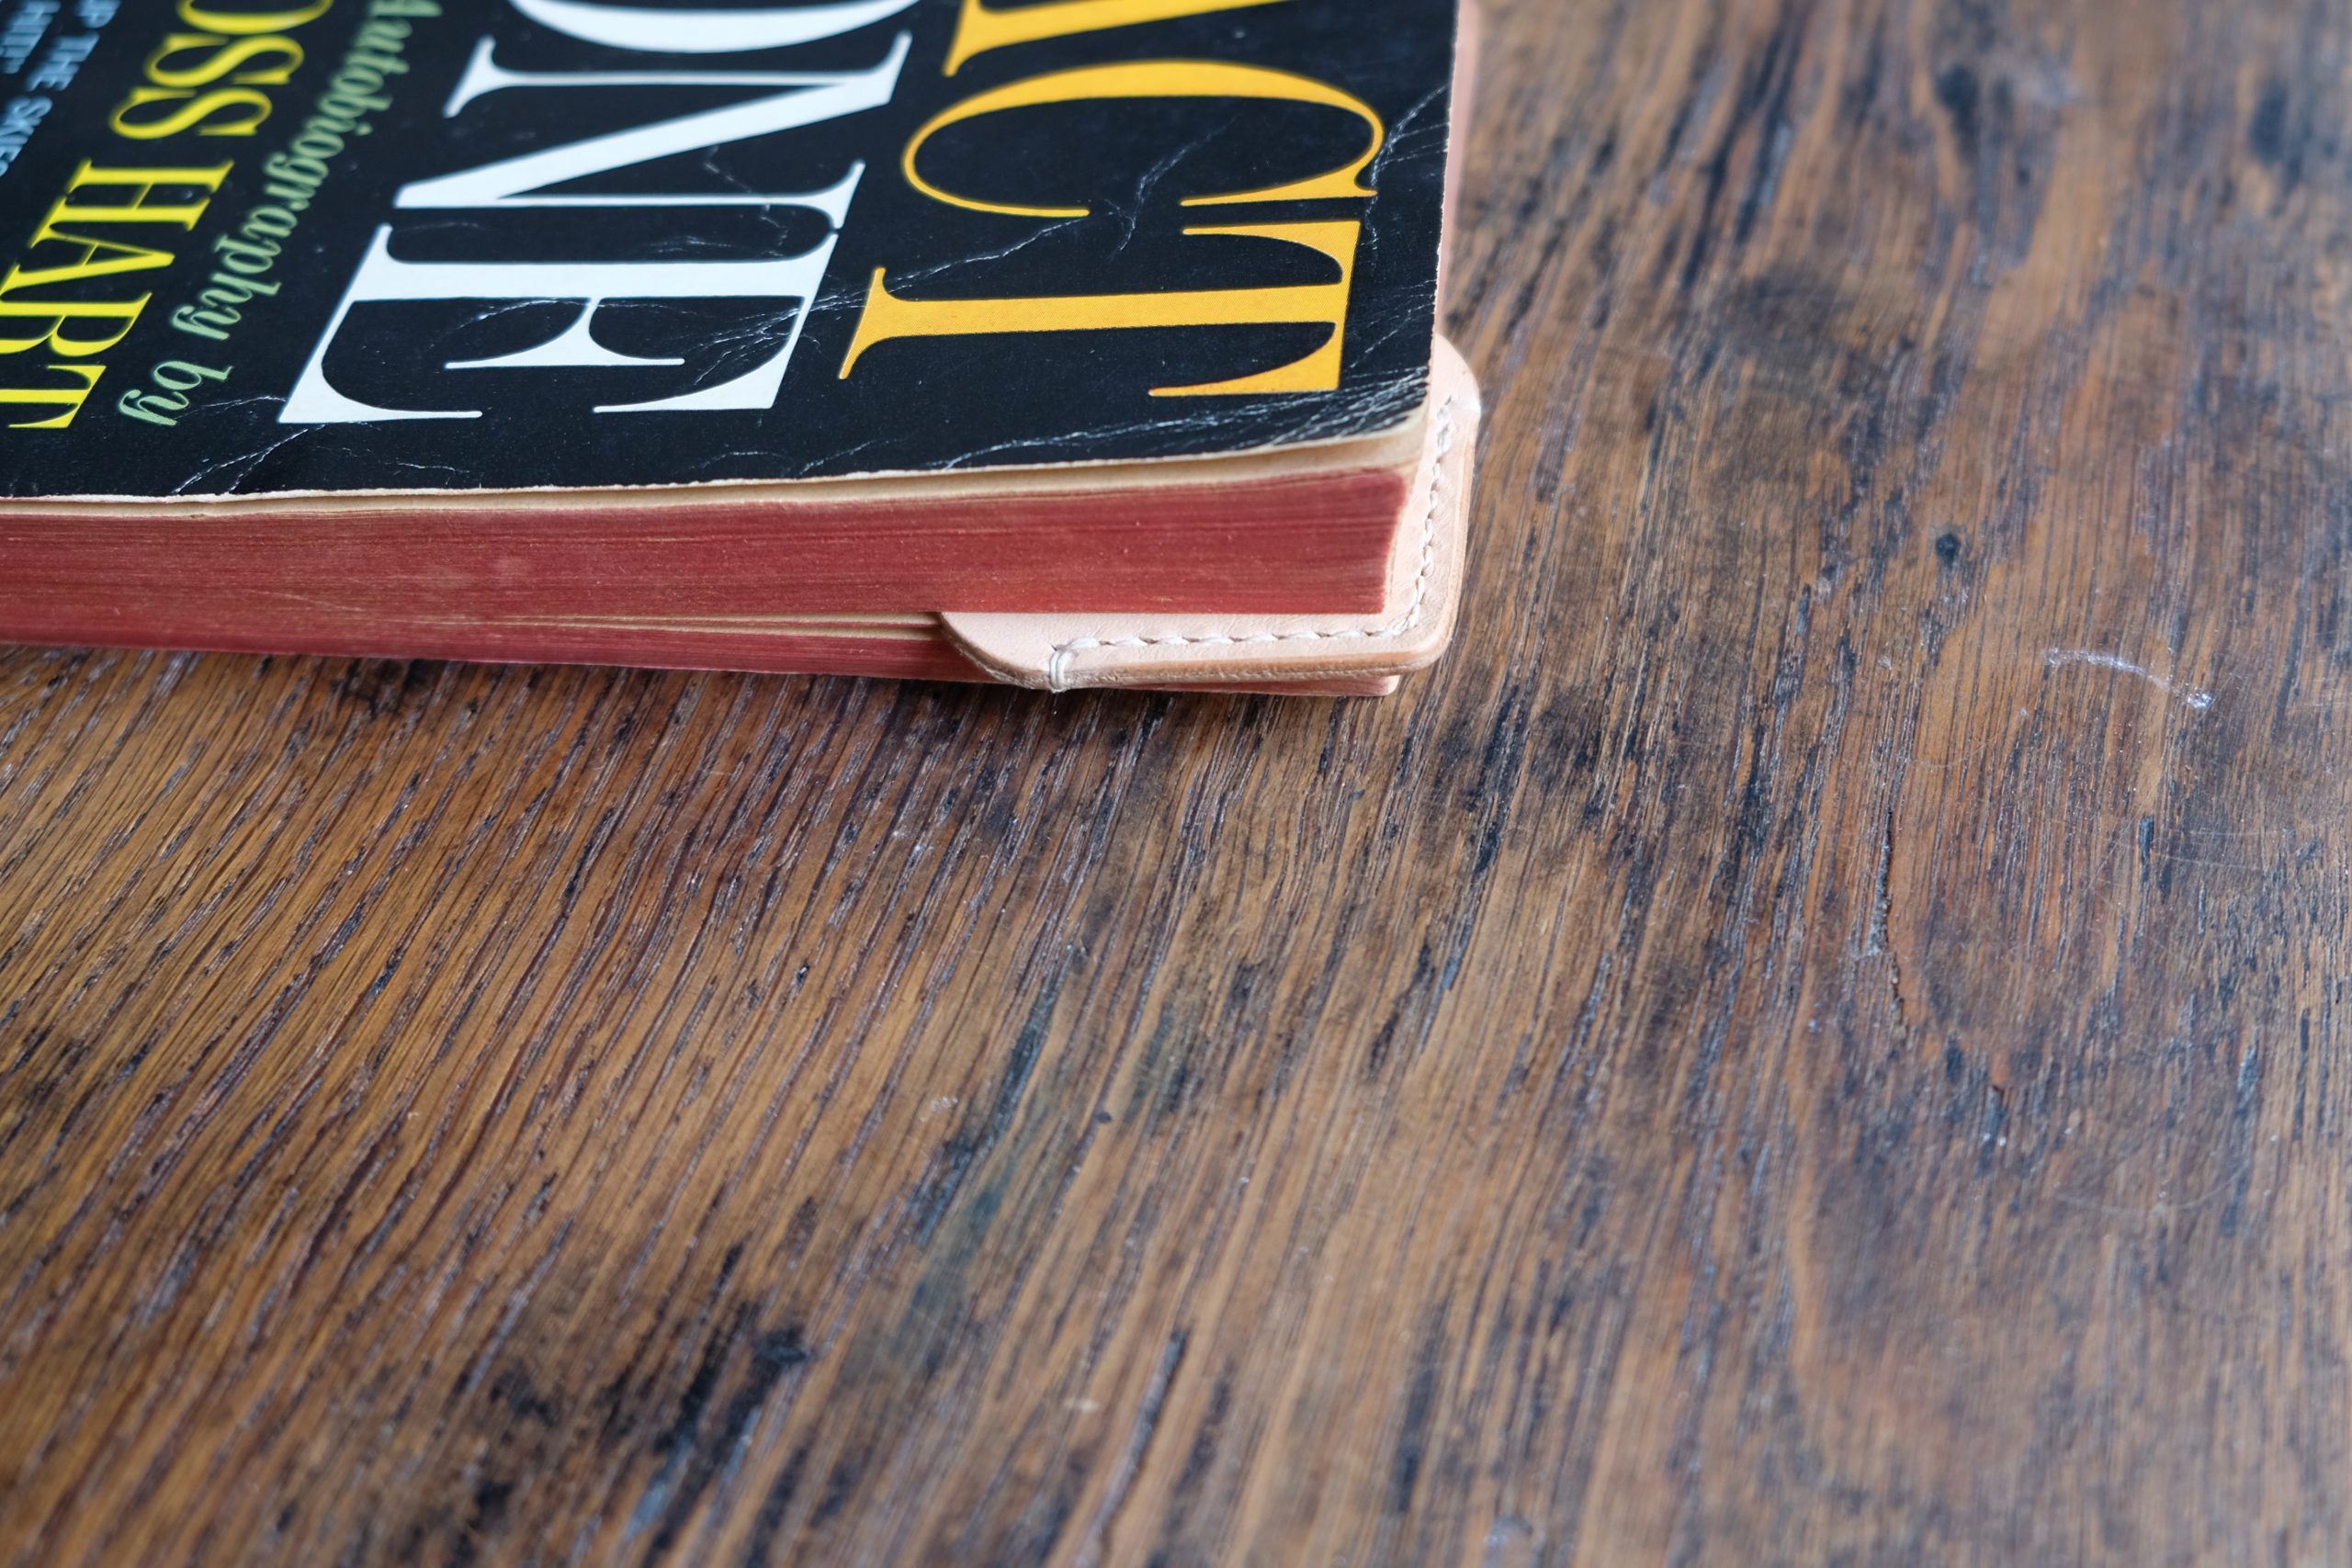 lerif designs love leather bookmark on corner of closed book on wood background